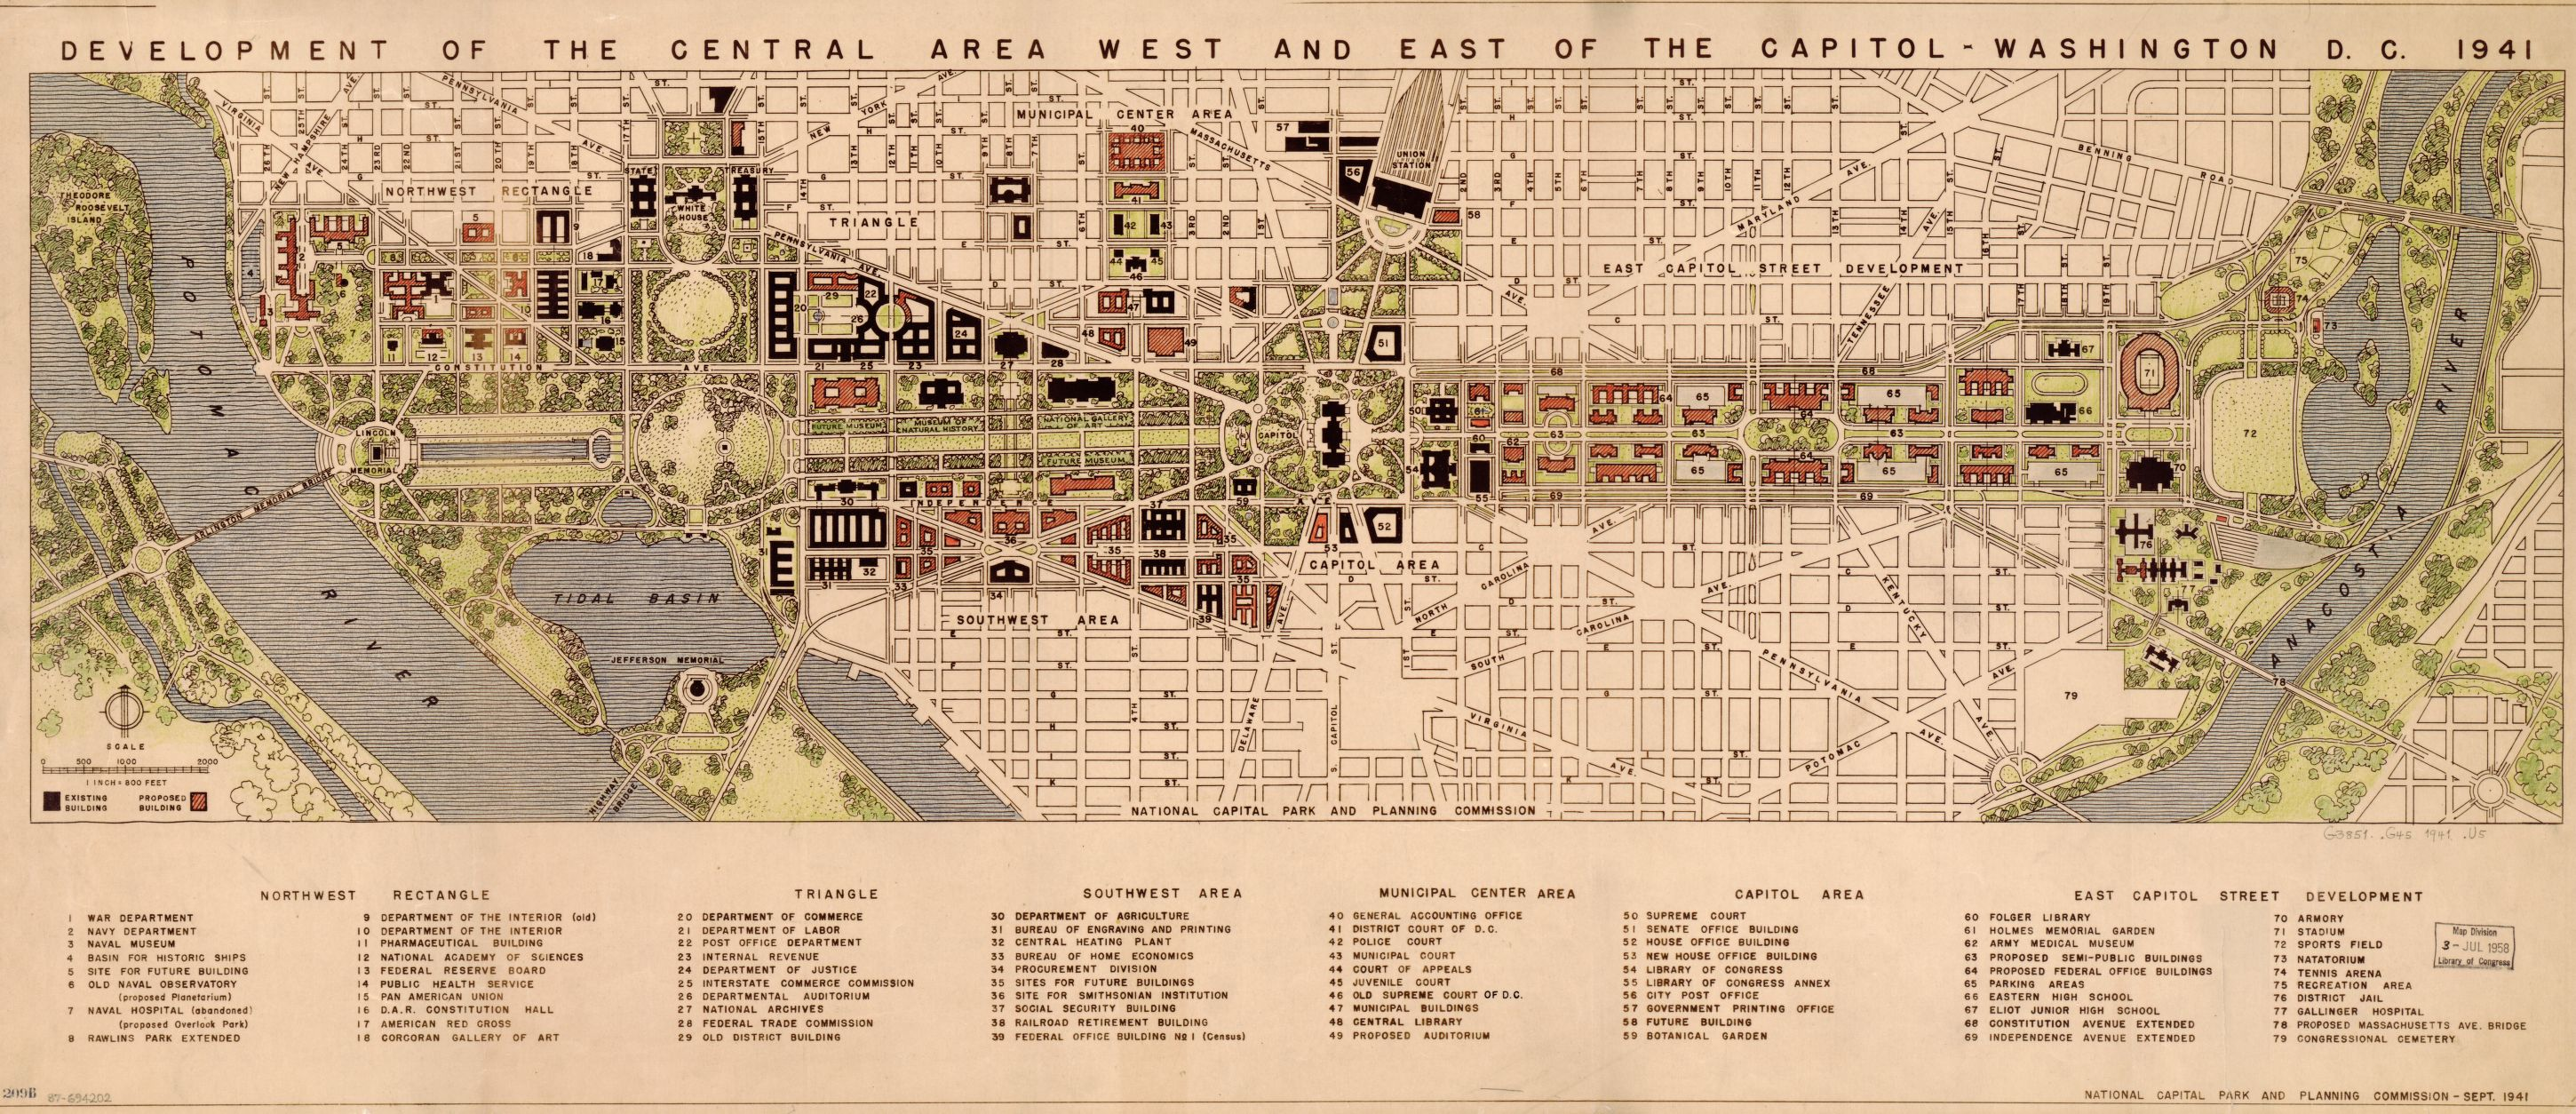 Map Of The Week Vol 10 Development Of The Area West And East Of The Capitol 1941 Popville